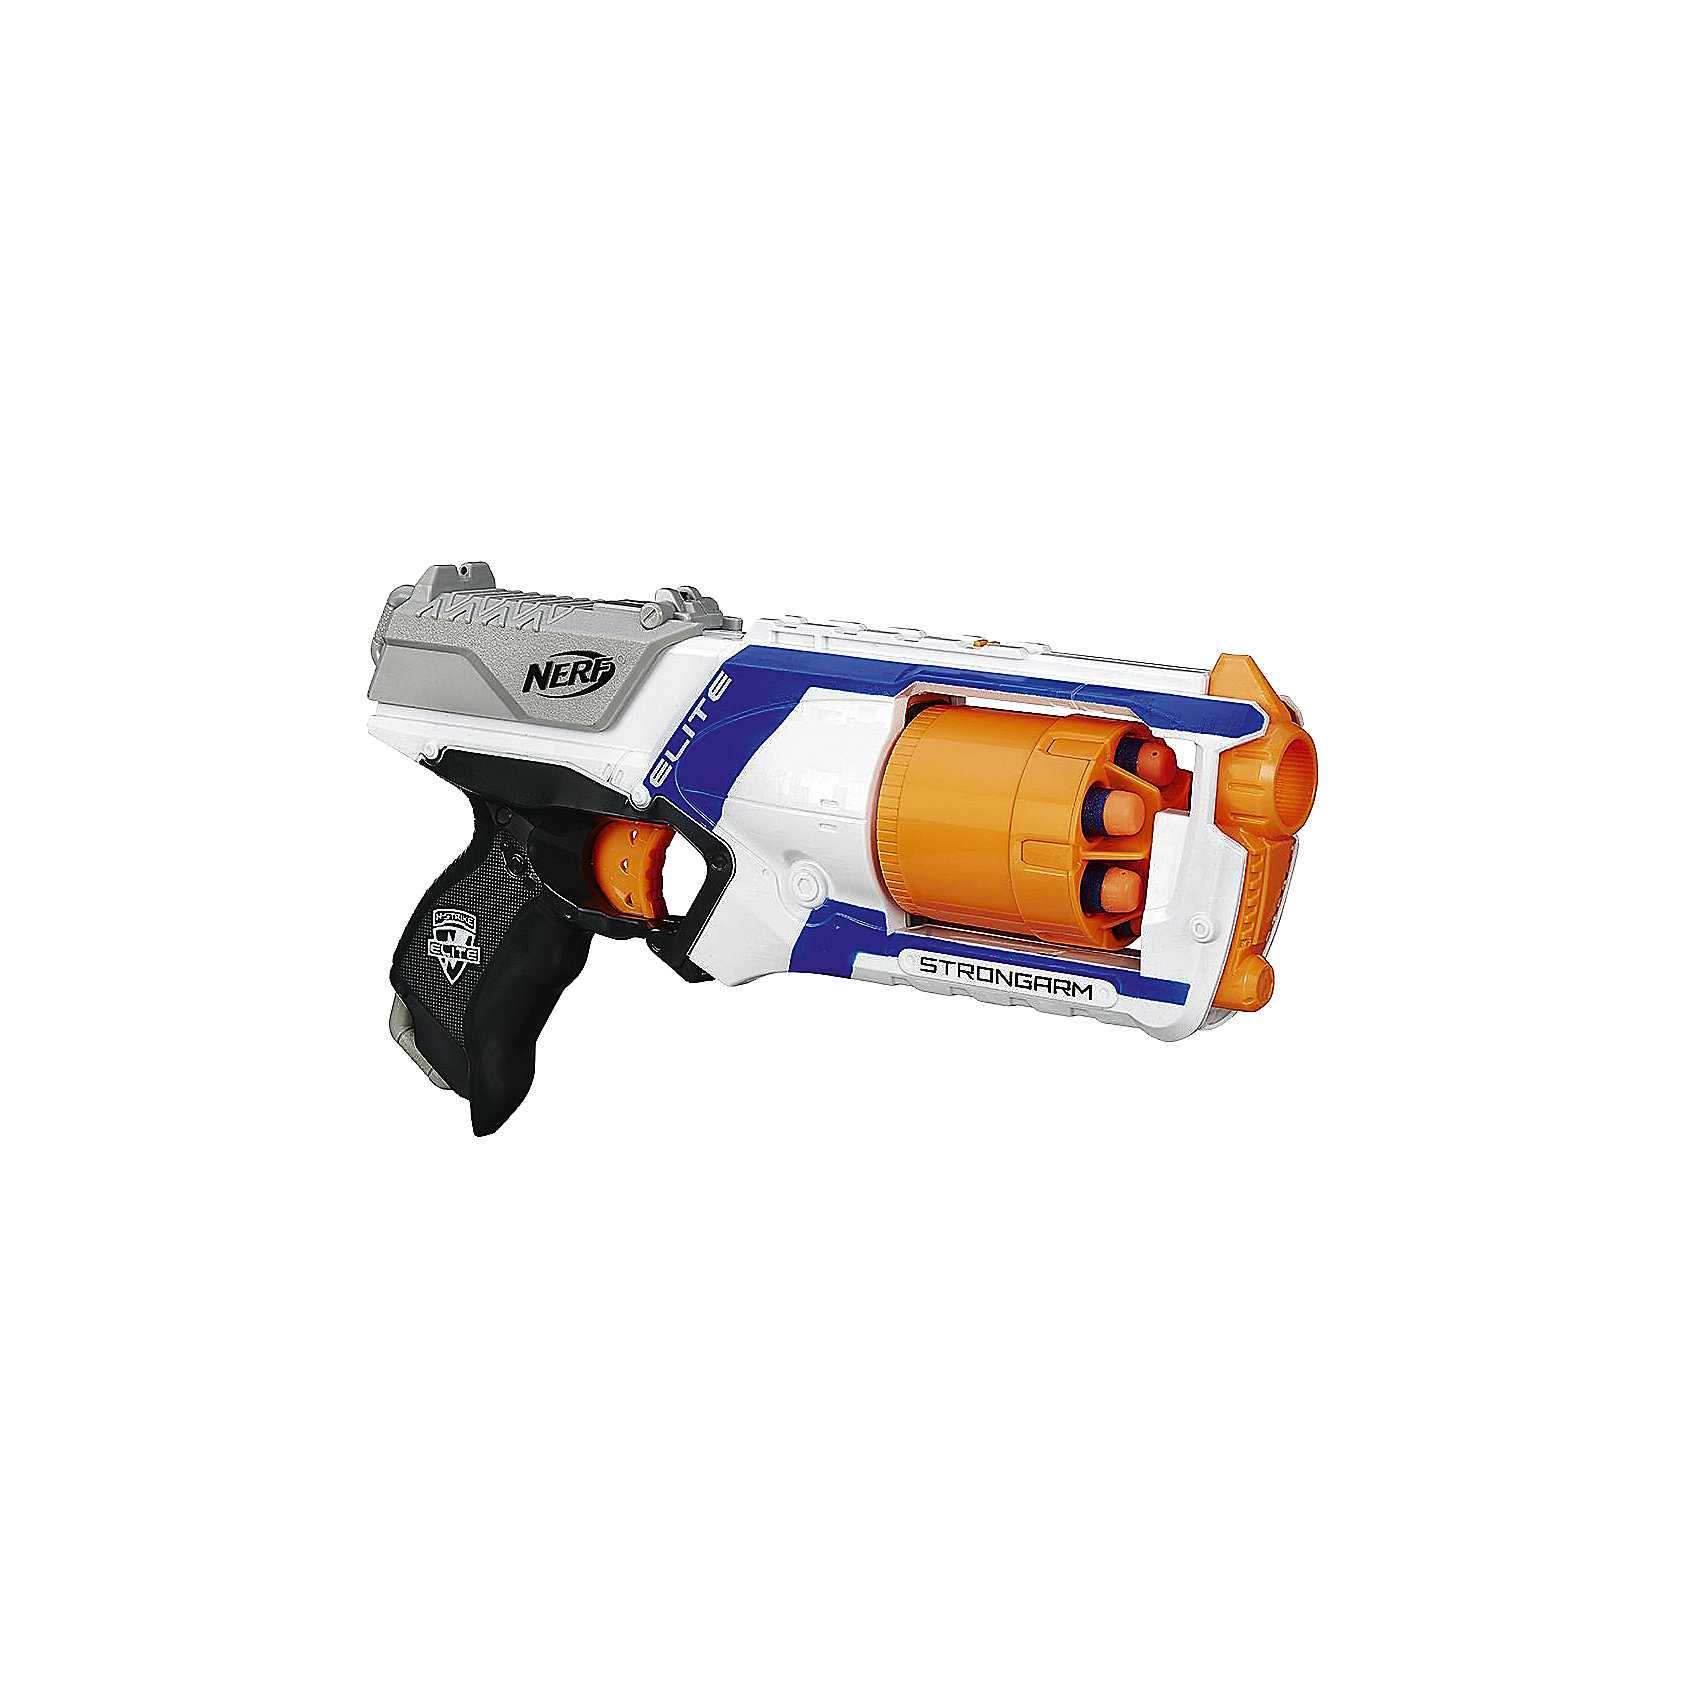 Hasbro Бластер Элит Стронгарм new, NERF turbo chra cartridge core ct16 17201 30080 1720130080 water cooled for toyota hi ace hi lux hilux hiace 2kd ftv 2kd 2 5l 102hp